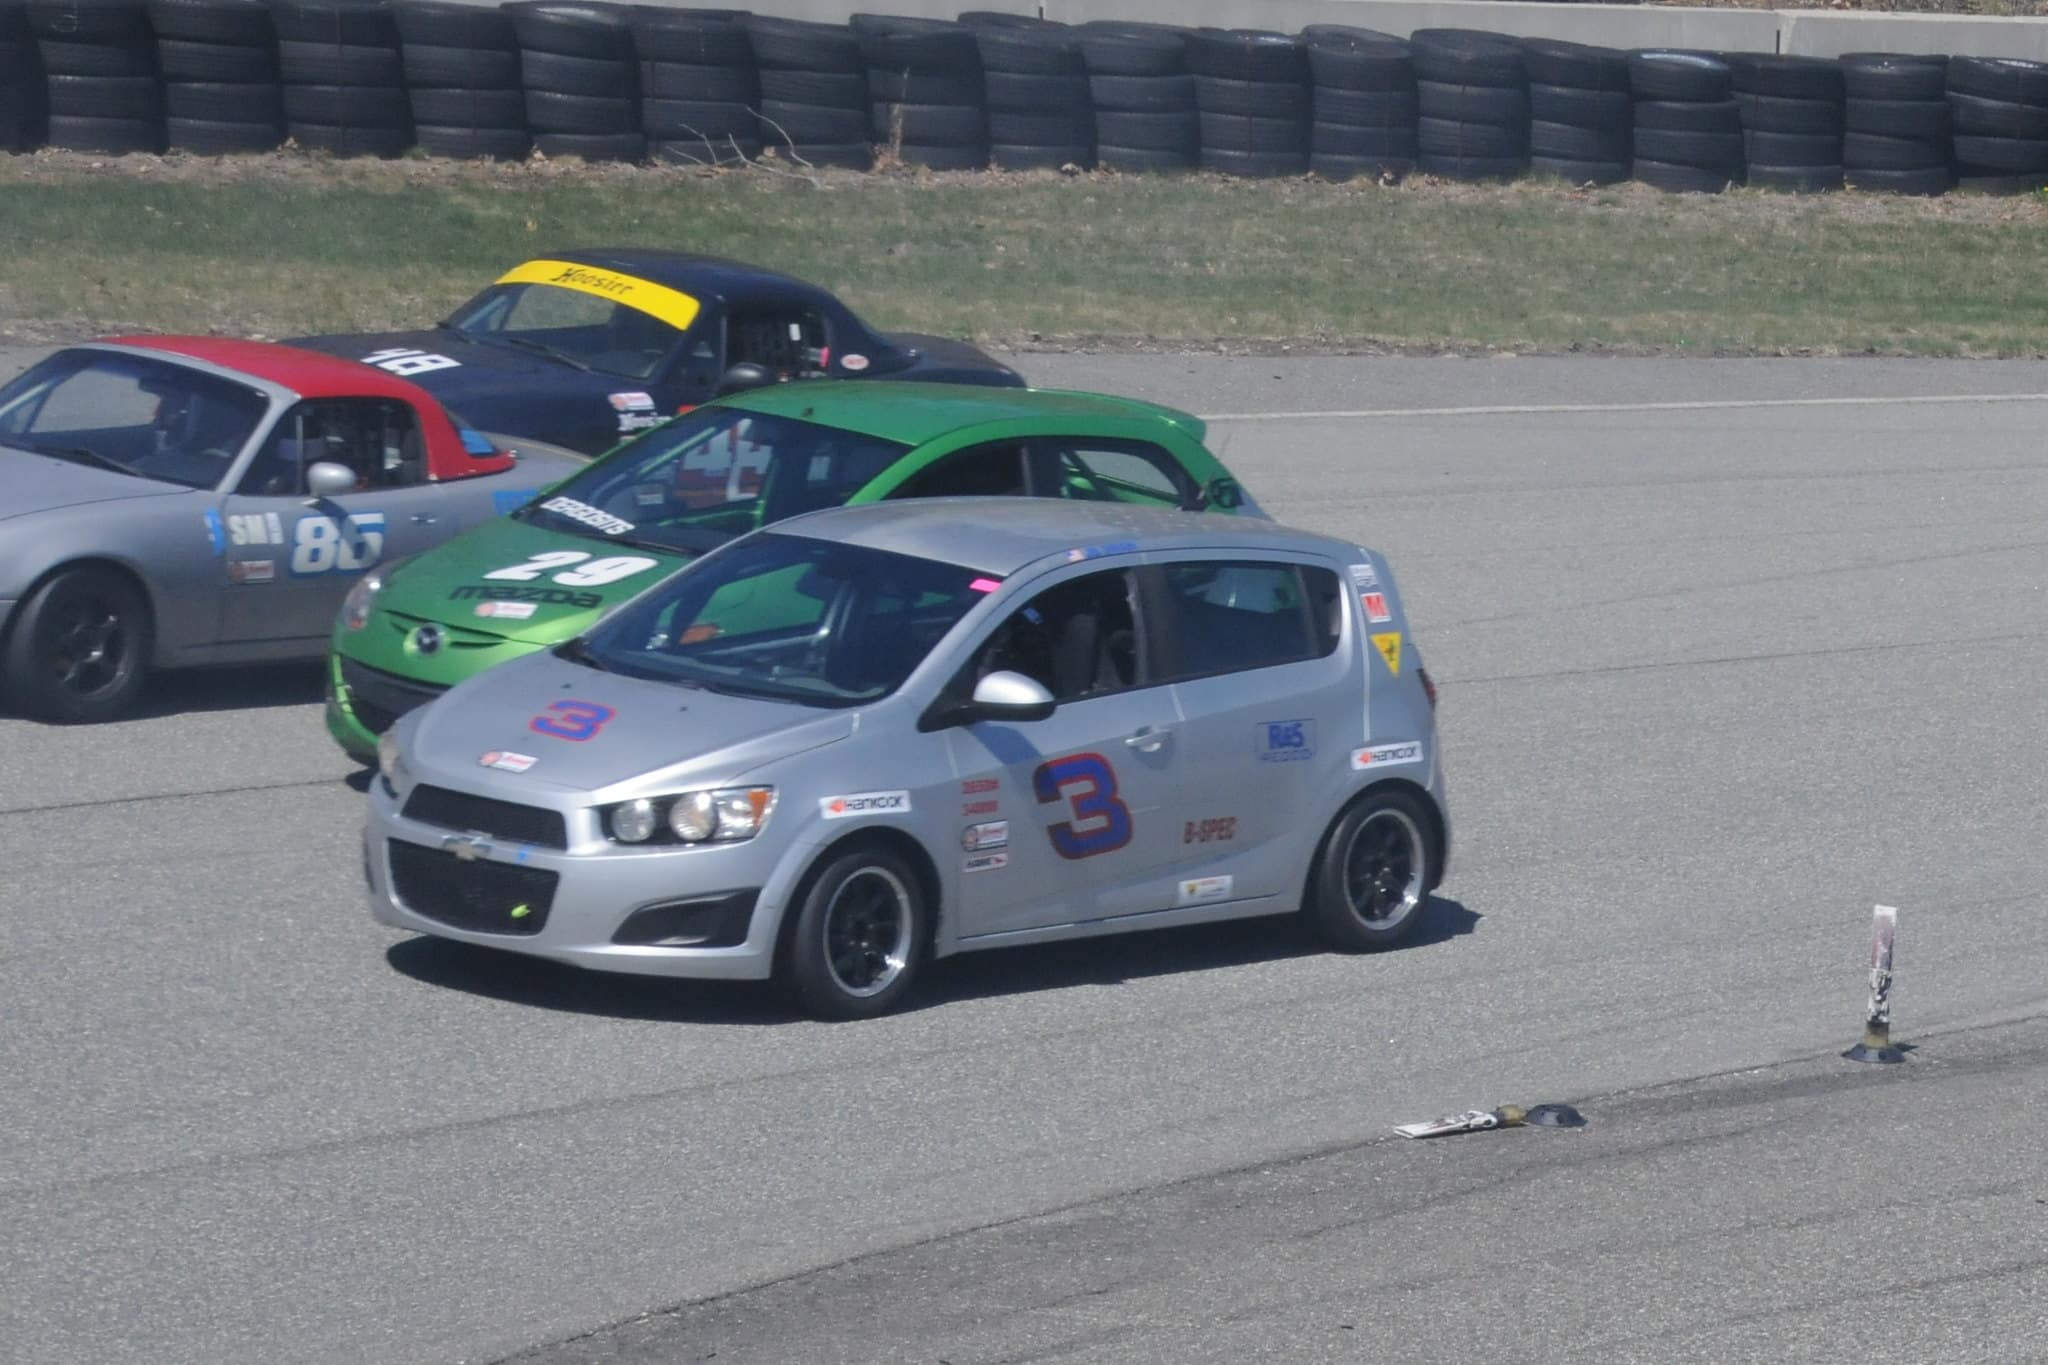 NERRC #1 – 2021 Club Racing Season Begins